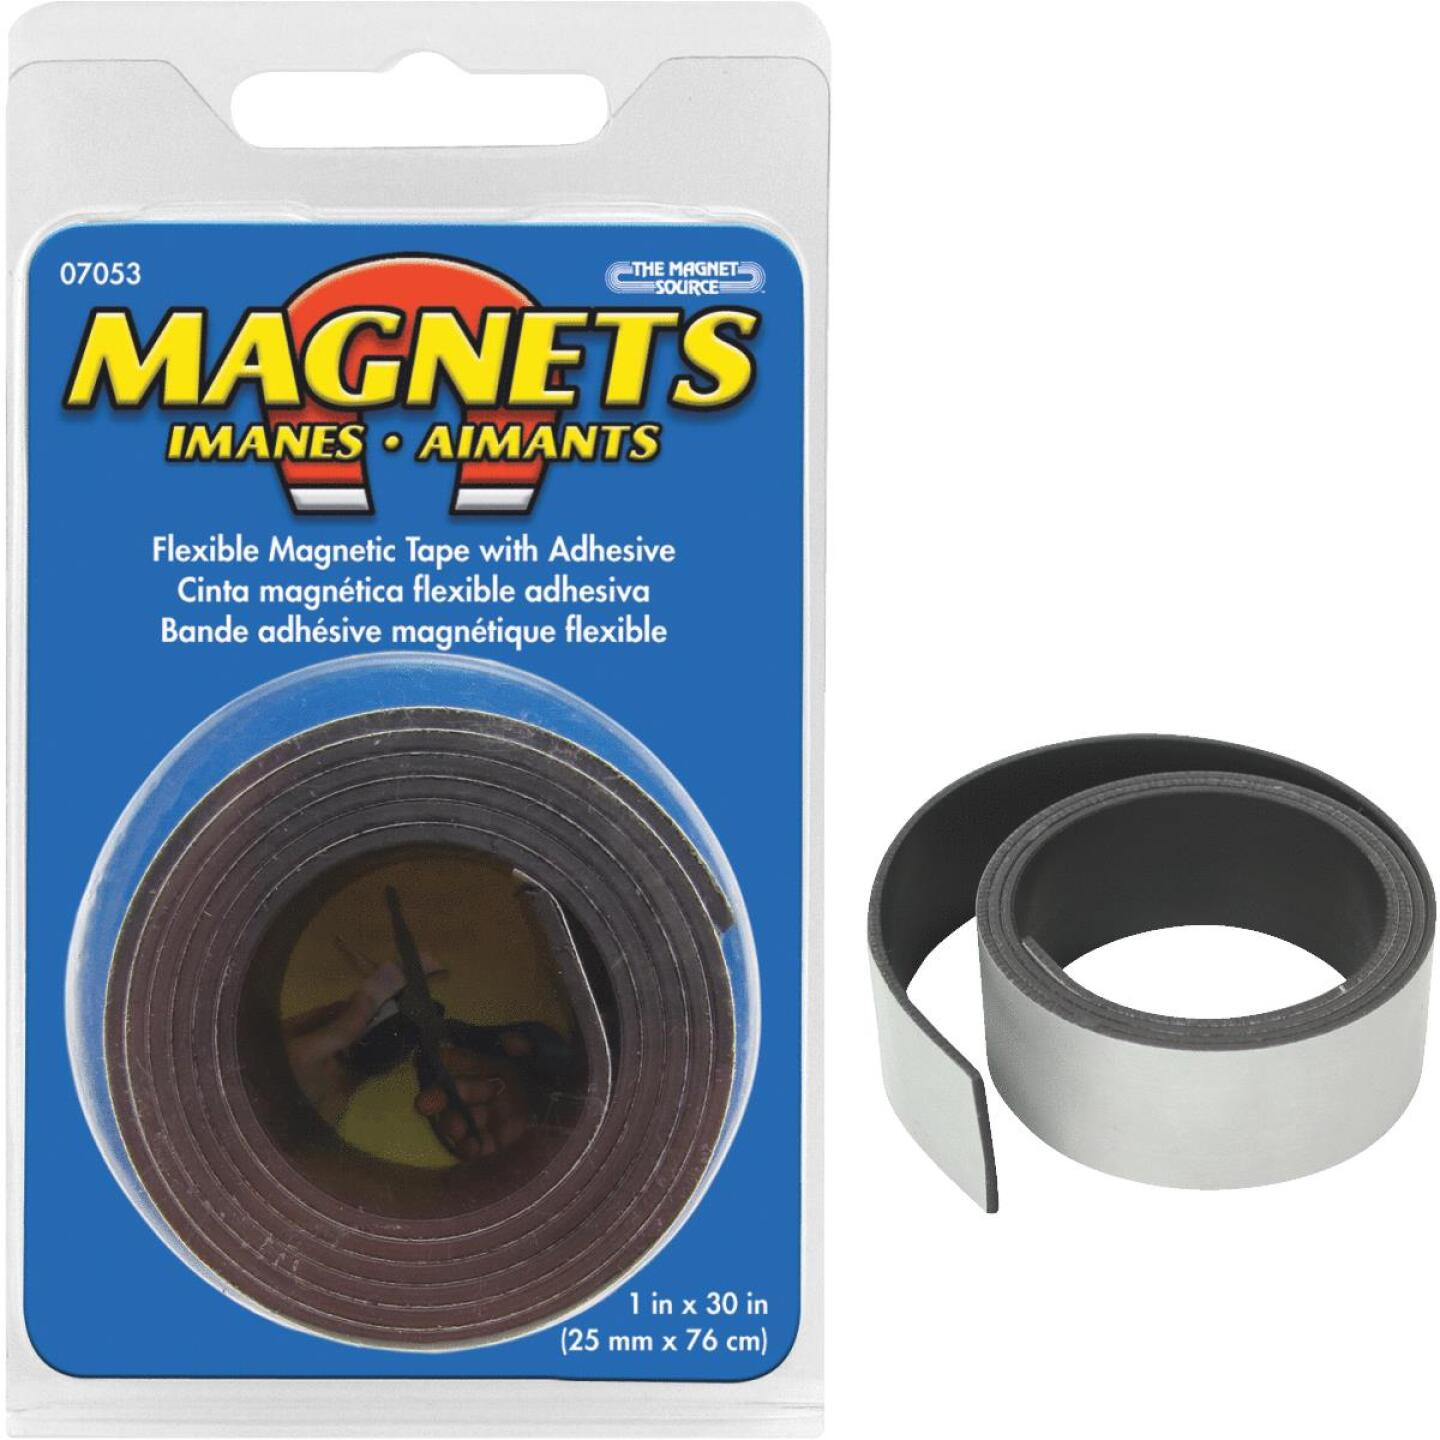 Master Magnetics 30 in. x 1 in. Magnetic Tape Image 1